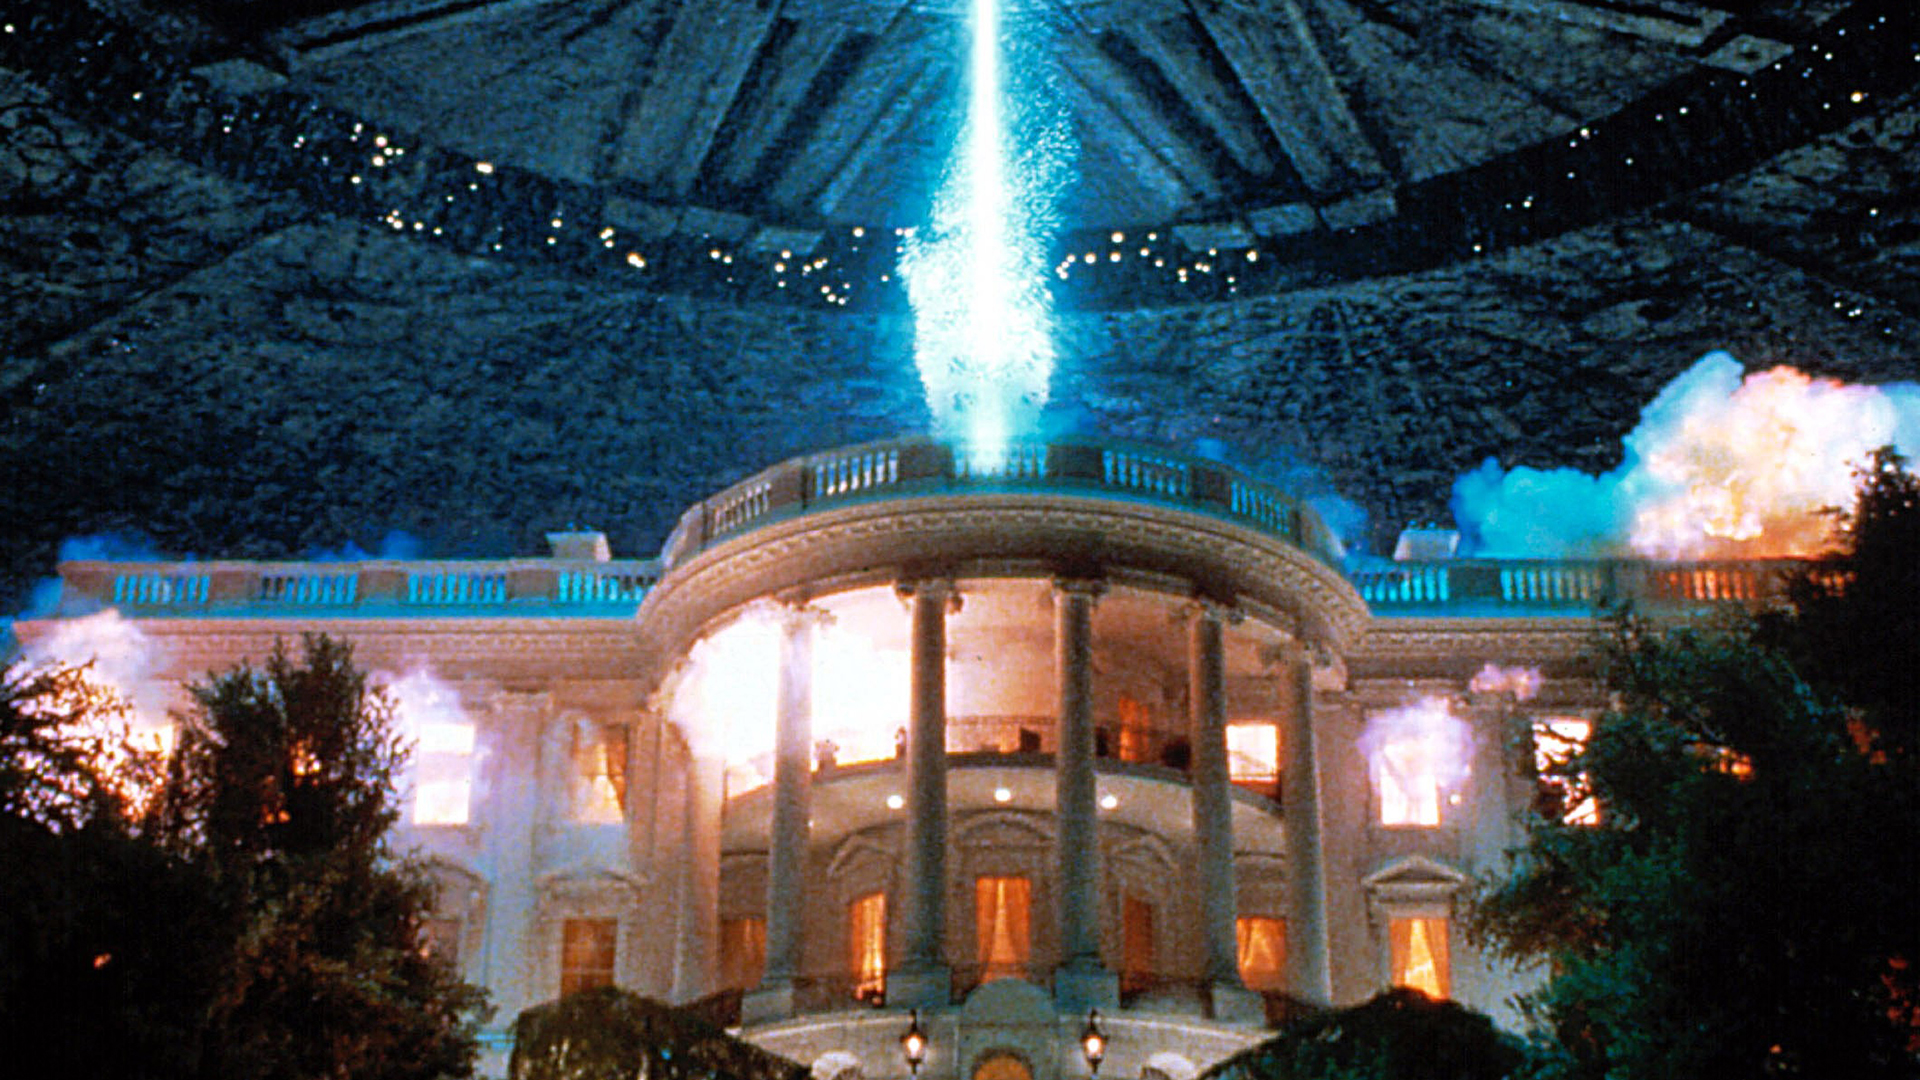 Fantastic Wallpaper Movie Independence Day - independence-day-white-house-explode  Collection_1001865.jpg